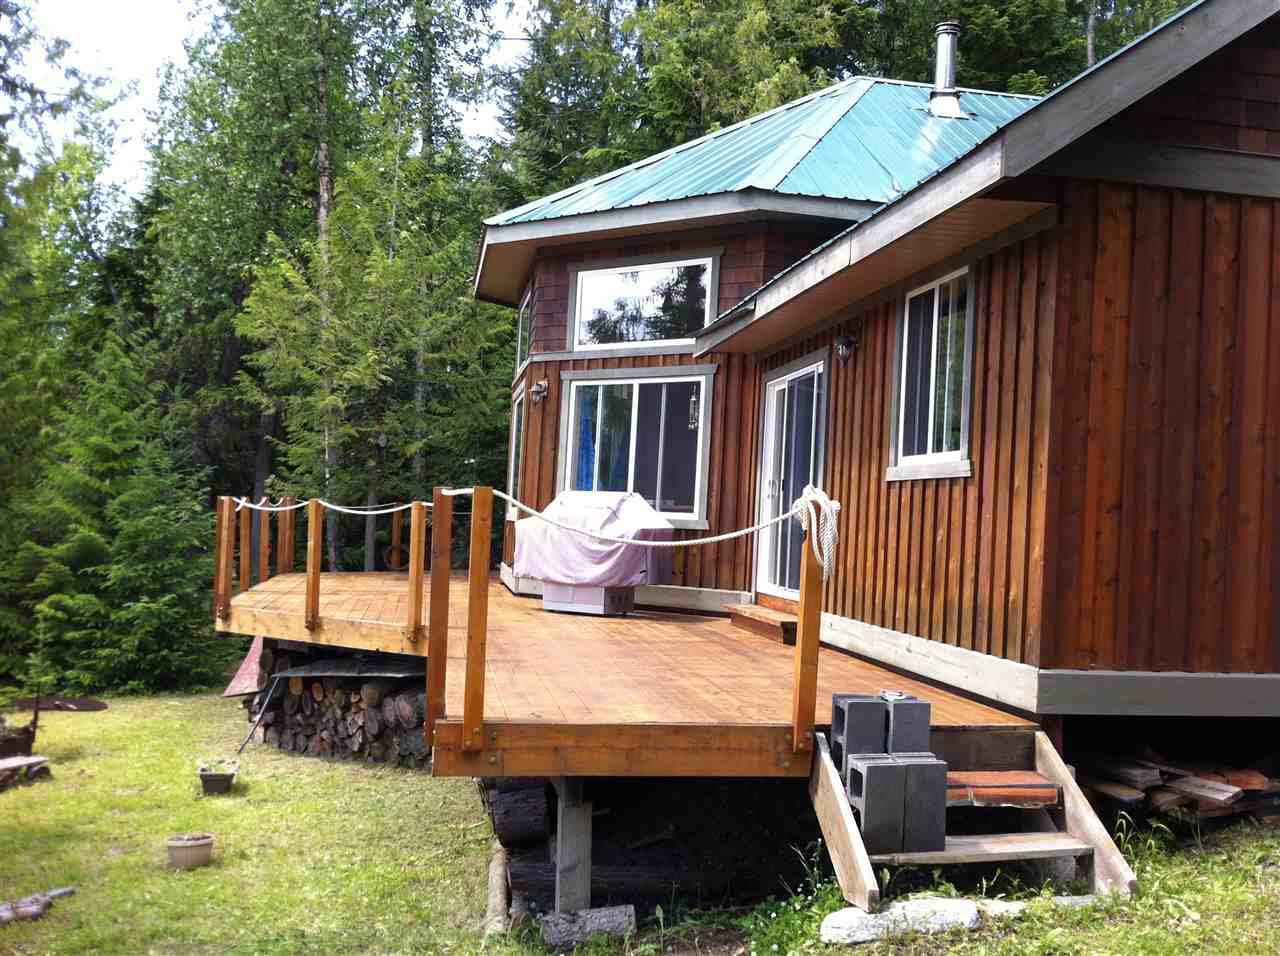 Main Photo: 5490 WINKLEY CREEK Road: Likely House for sale (Williams Lake (Zone 27))  : MLS®# R2522077